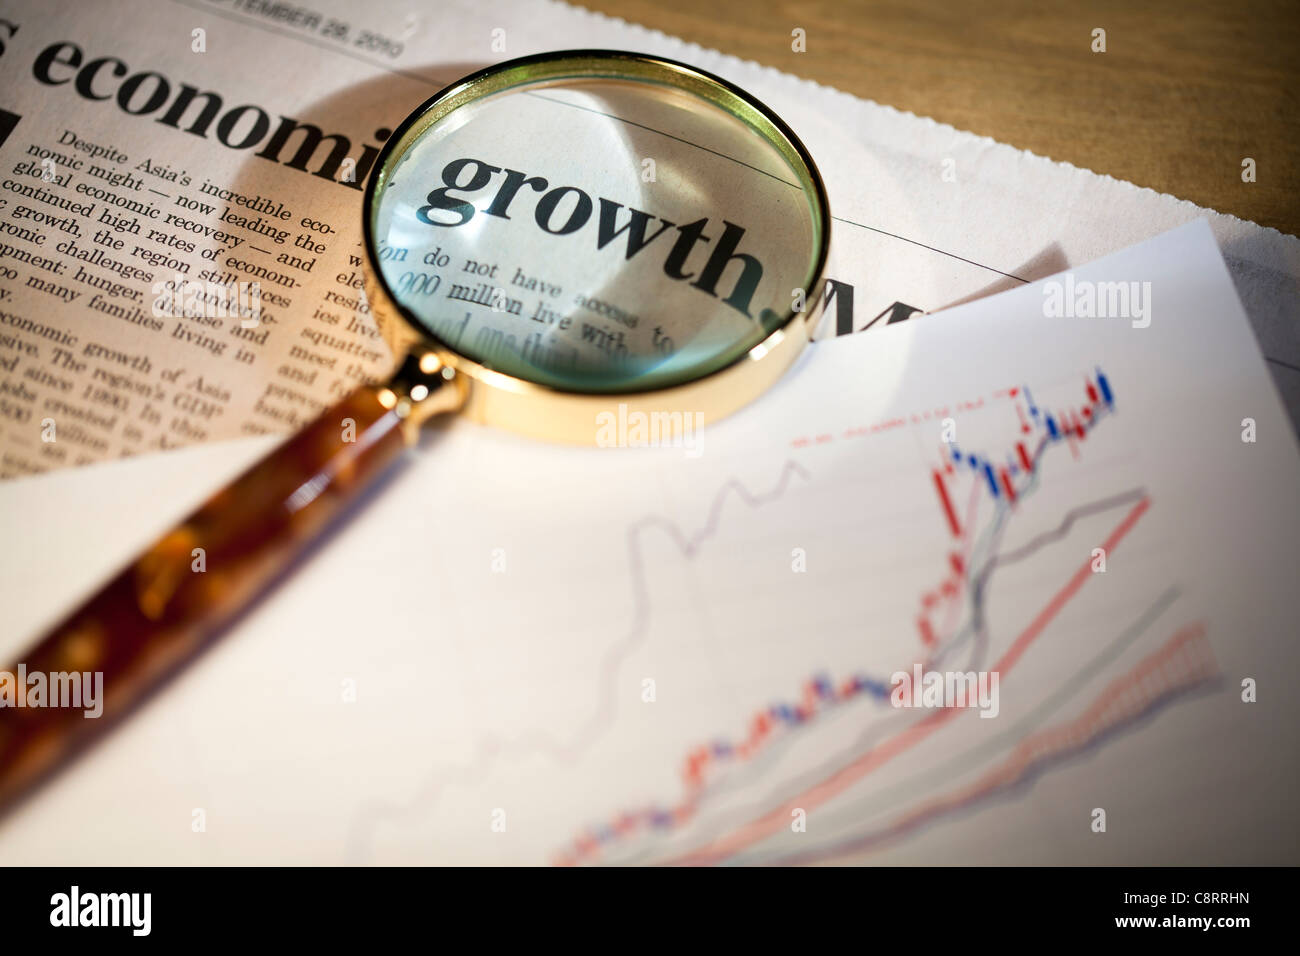 Close-up of headline of newspaper through magnifying glass and growth chart - Stock Image